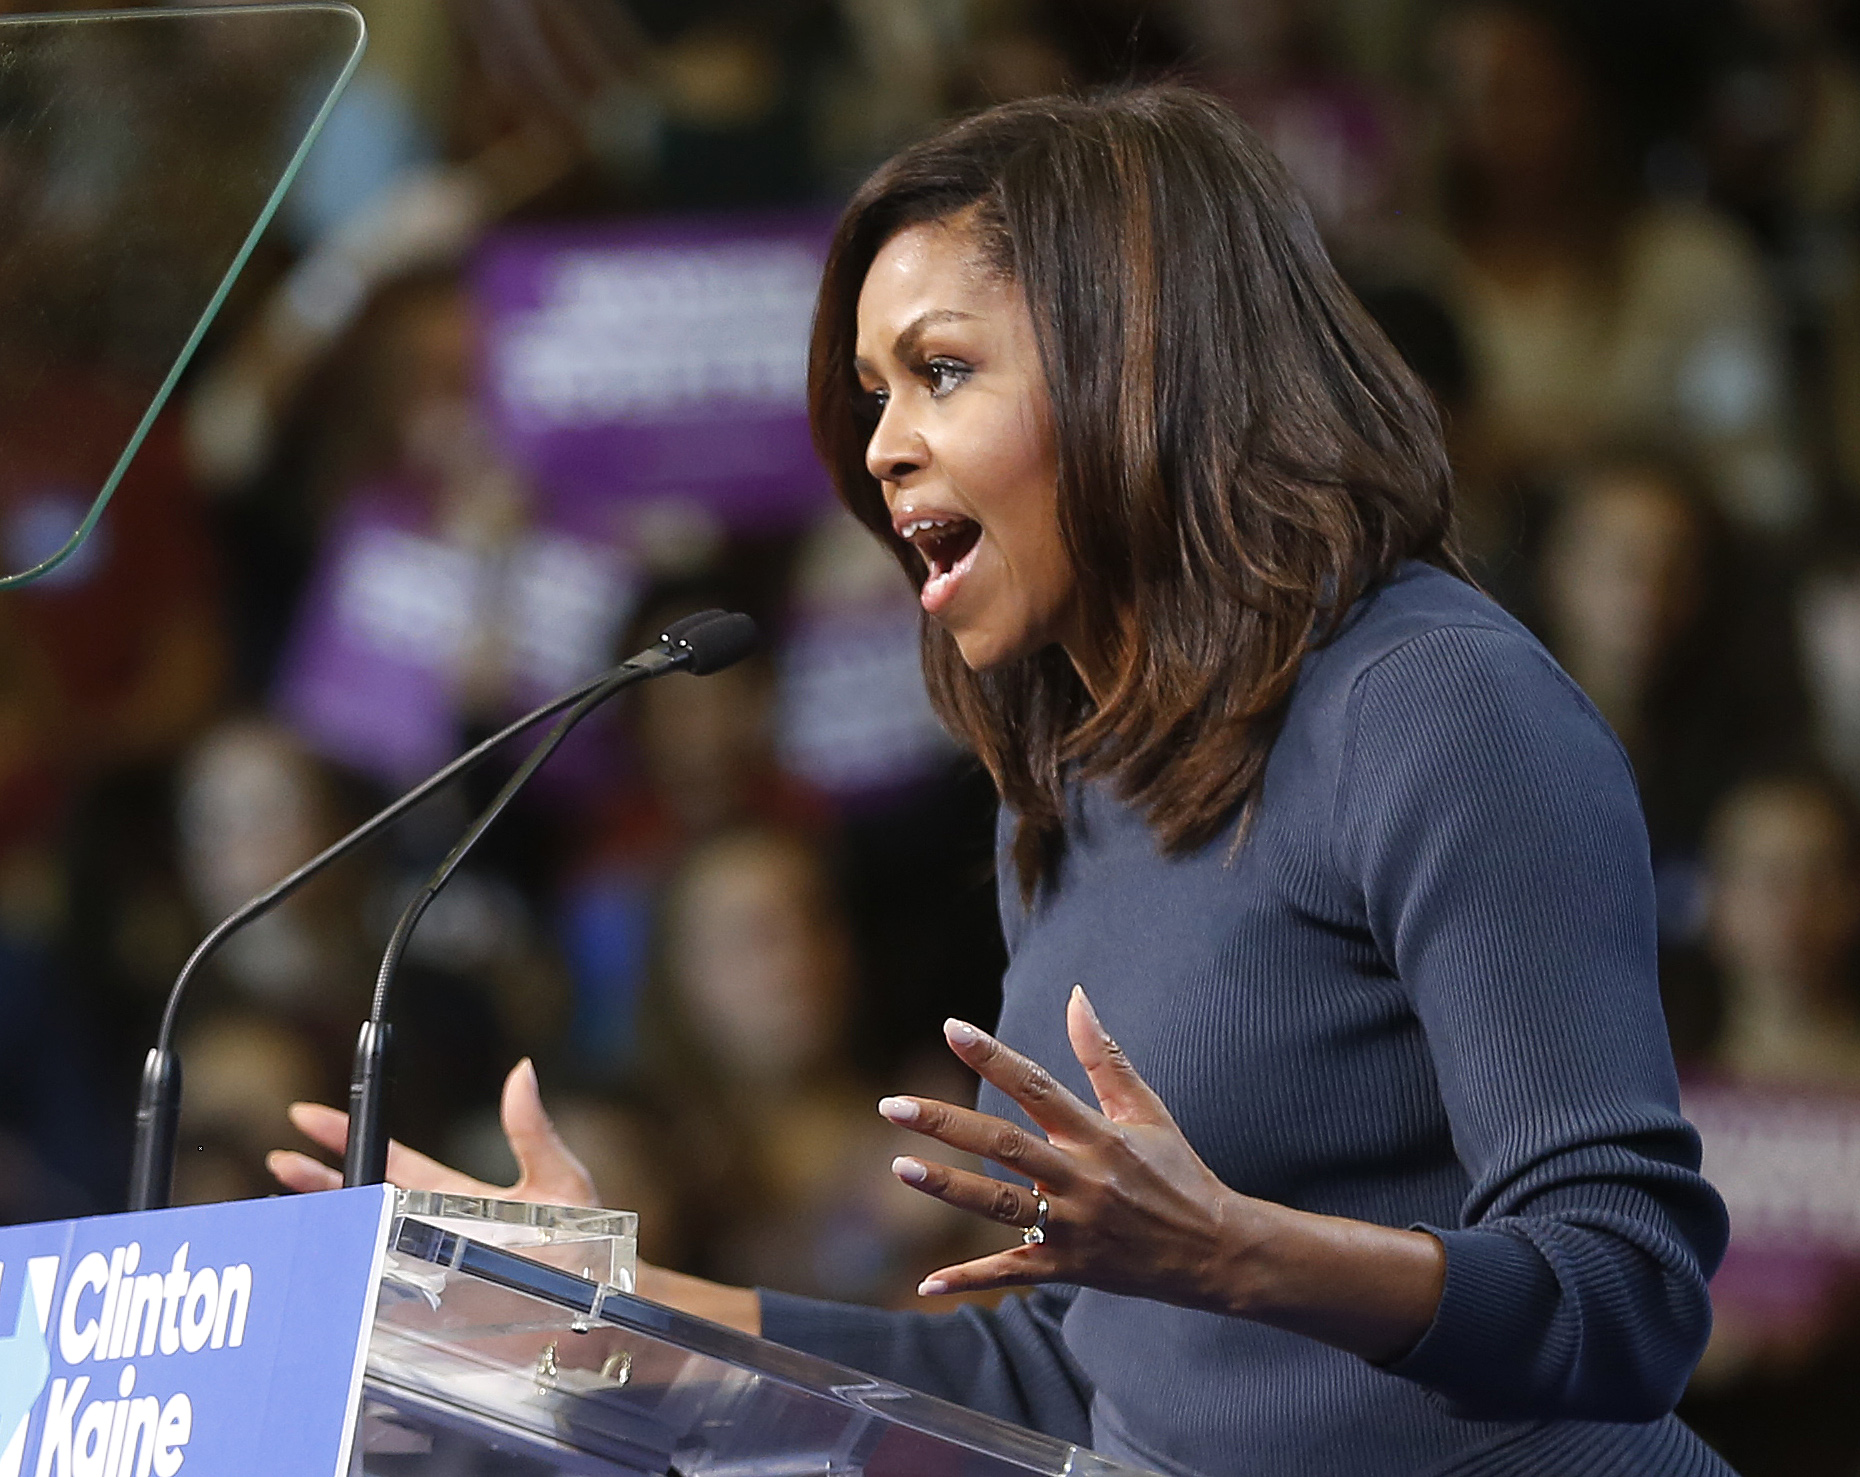 First Lady Michelle Obama speaks during a campaign rally for Democratic presidential candidate Hillary Clinton on Oct. 13, 2016, in Manchester, N.H.